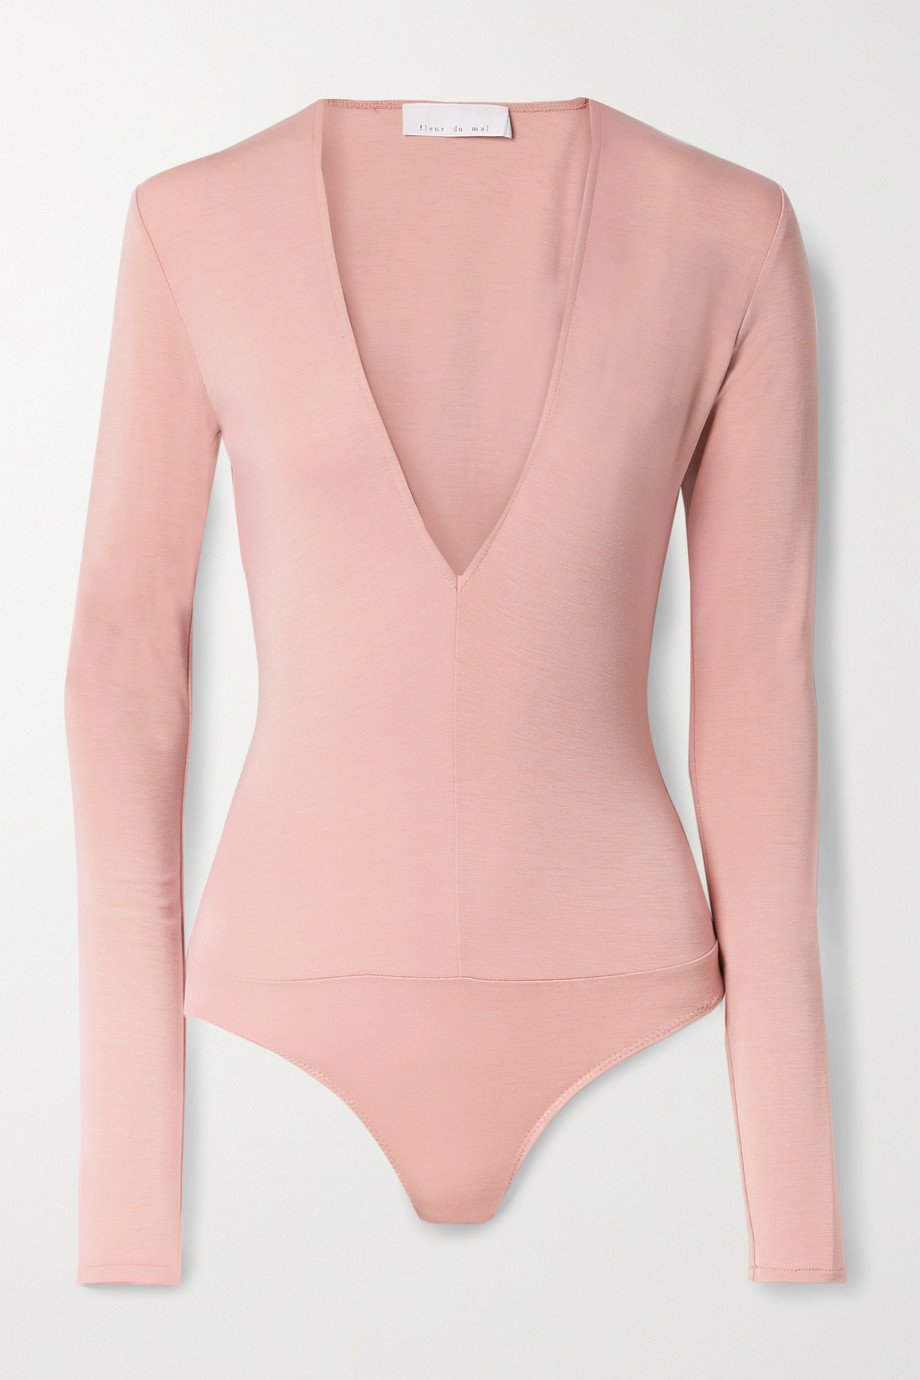 Fleur du Mal Stretch-cotton jersey thong bodysuit